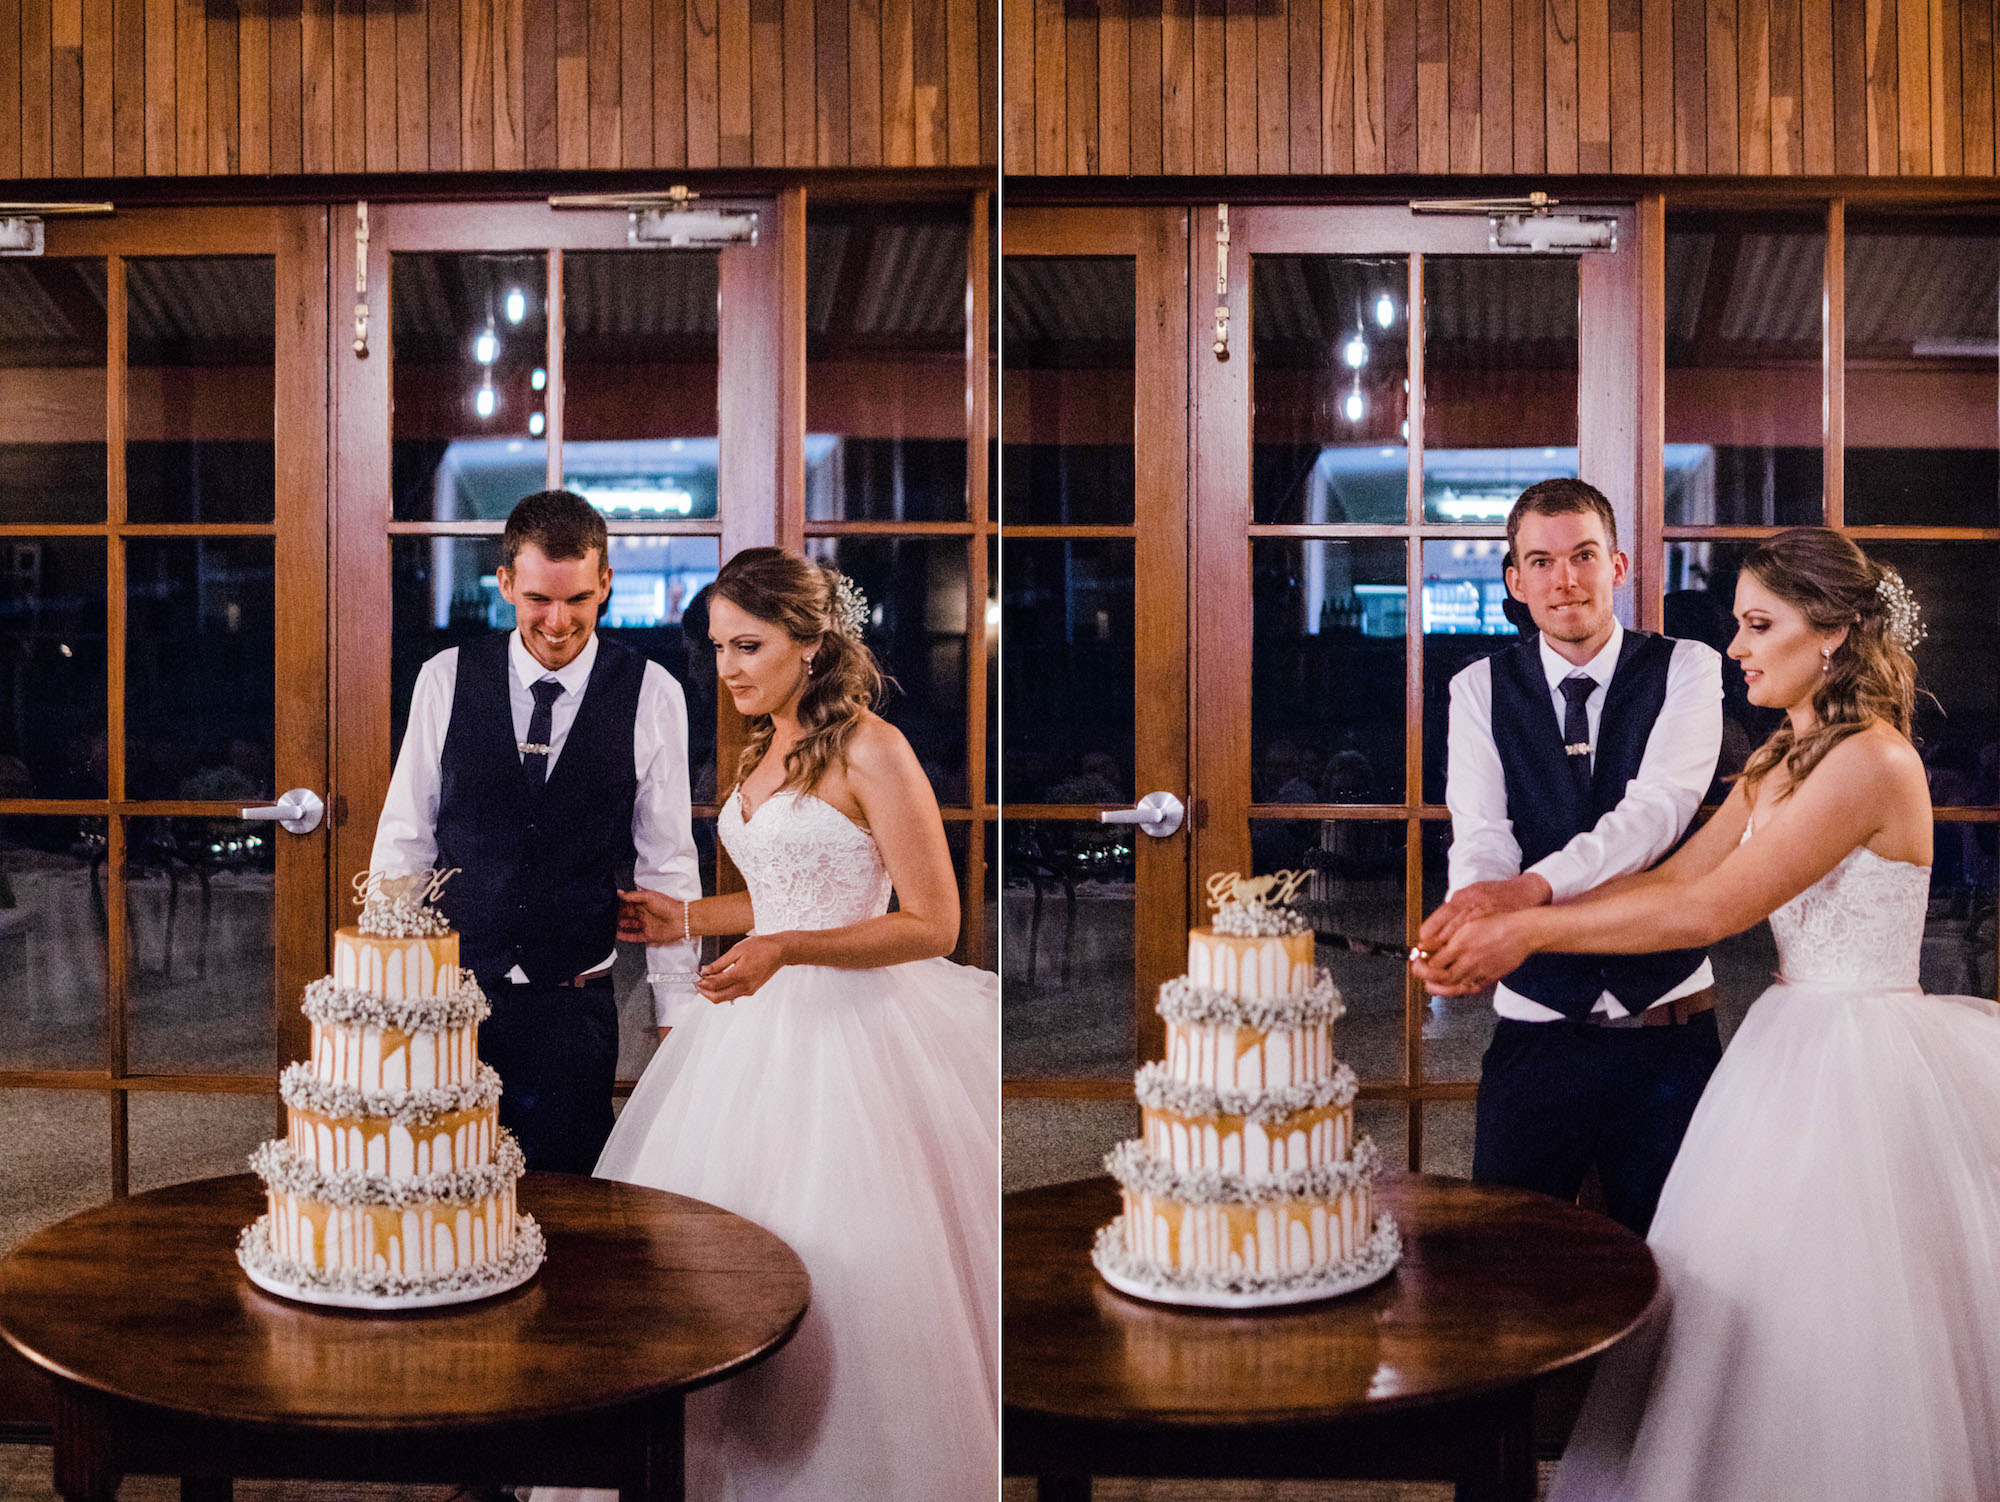 Wedding photography of the bride & groom cutting the cake at Quarry Farm.